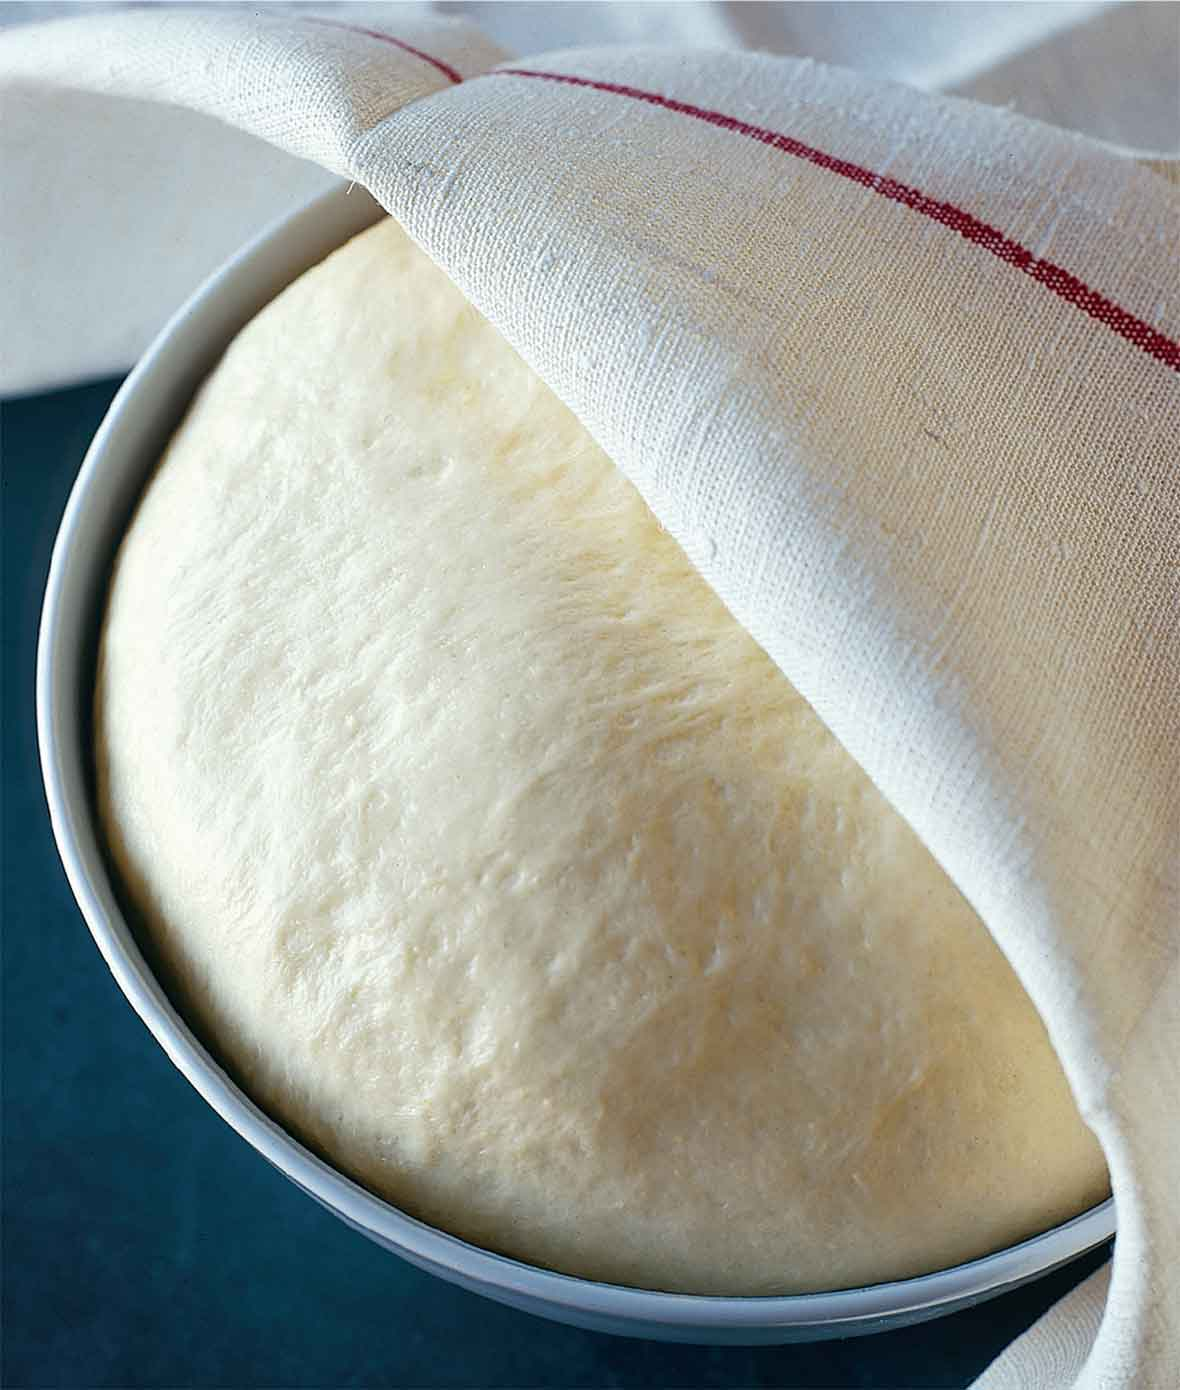 A ball of rising semolina pizza dough in a round metal tin, partially covered by a kitchen towel.